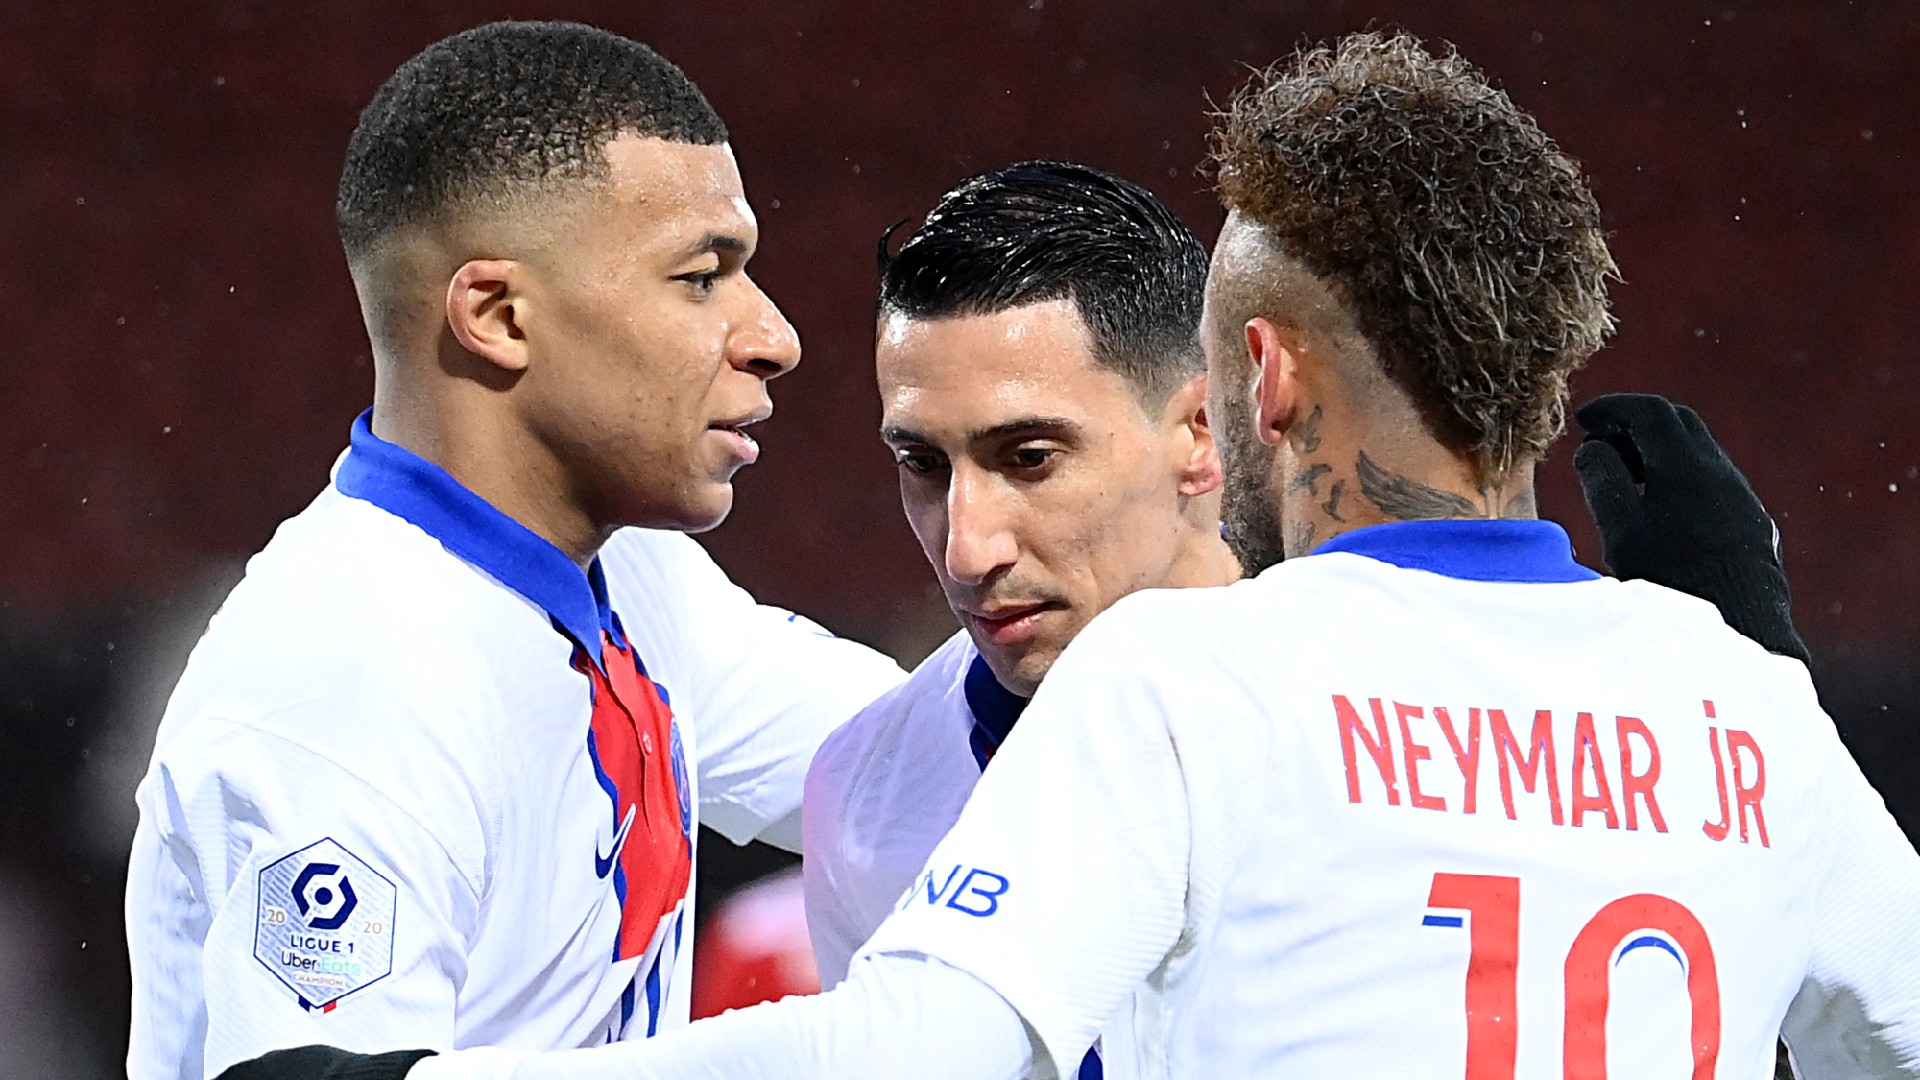 'I don't think he'll find a better team' - Di Maria expects Mbappe to stay at PSG in wake of Messi arrival